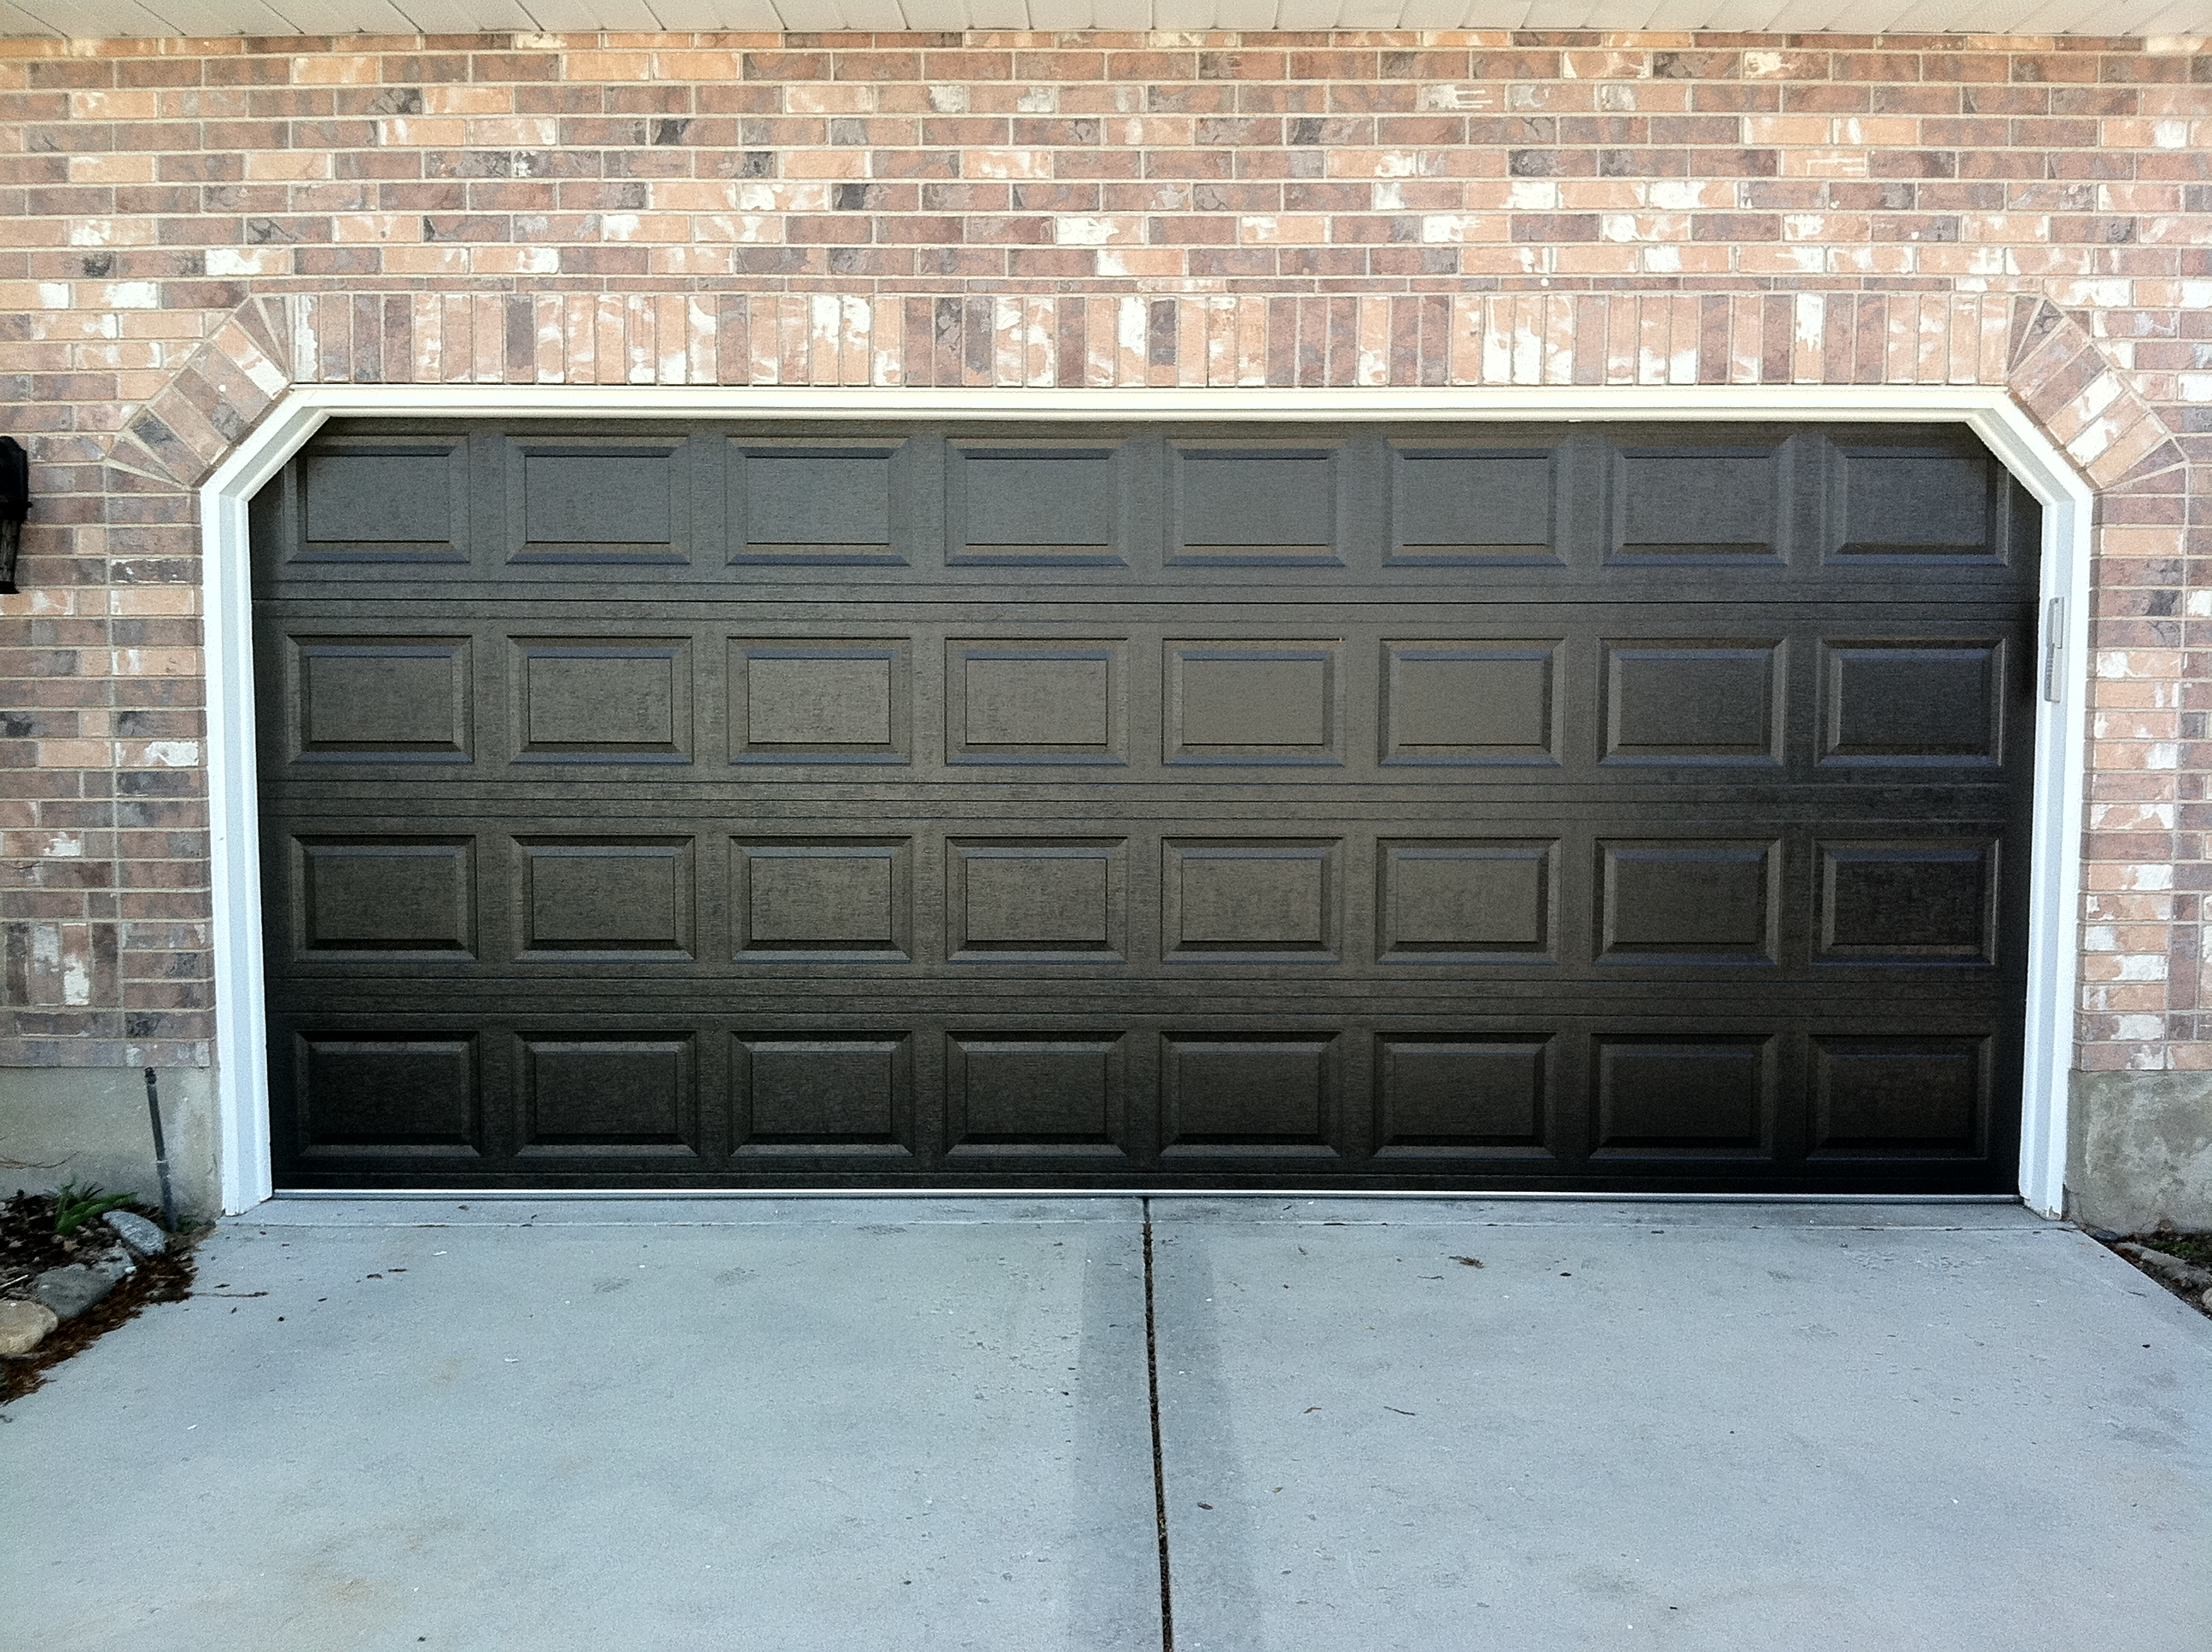 New door sales installation a plus garage doors for Garage door repair west jordan utah